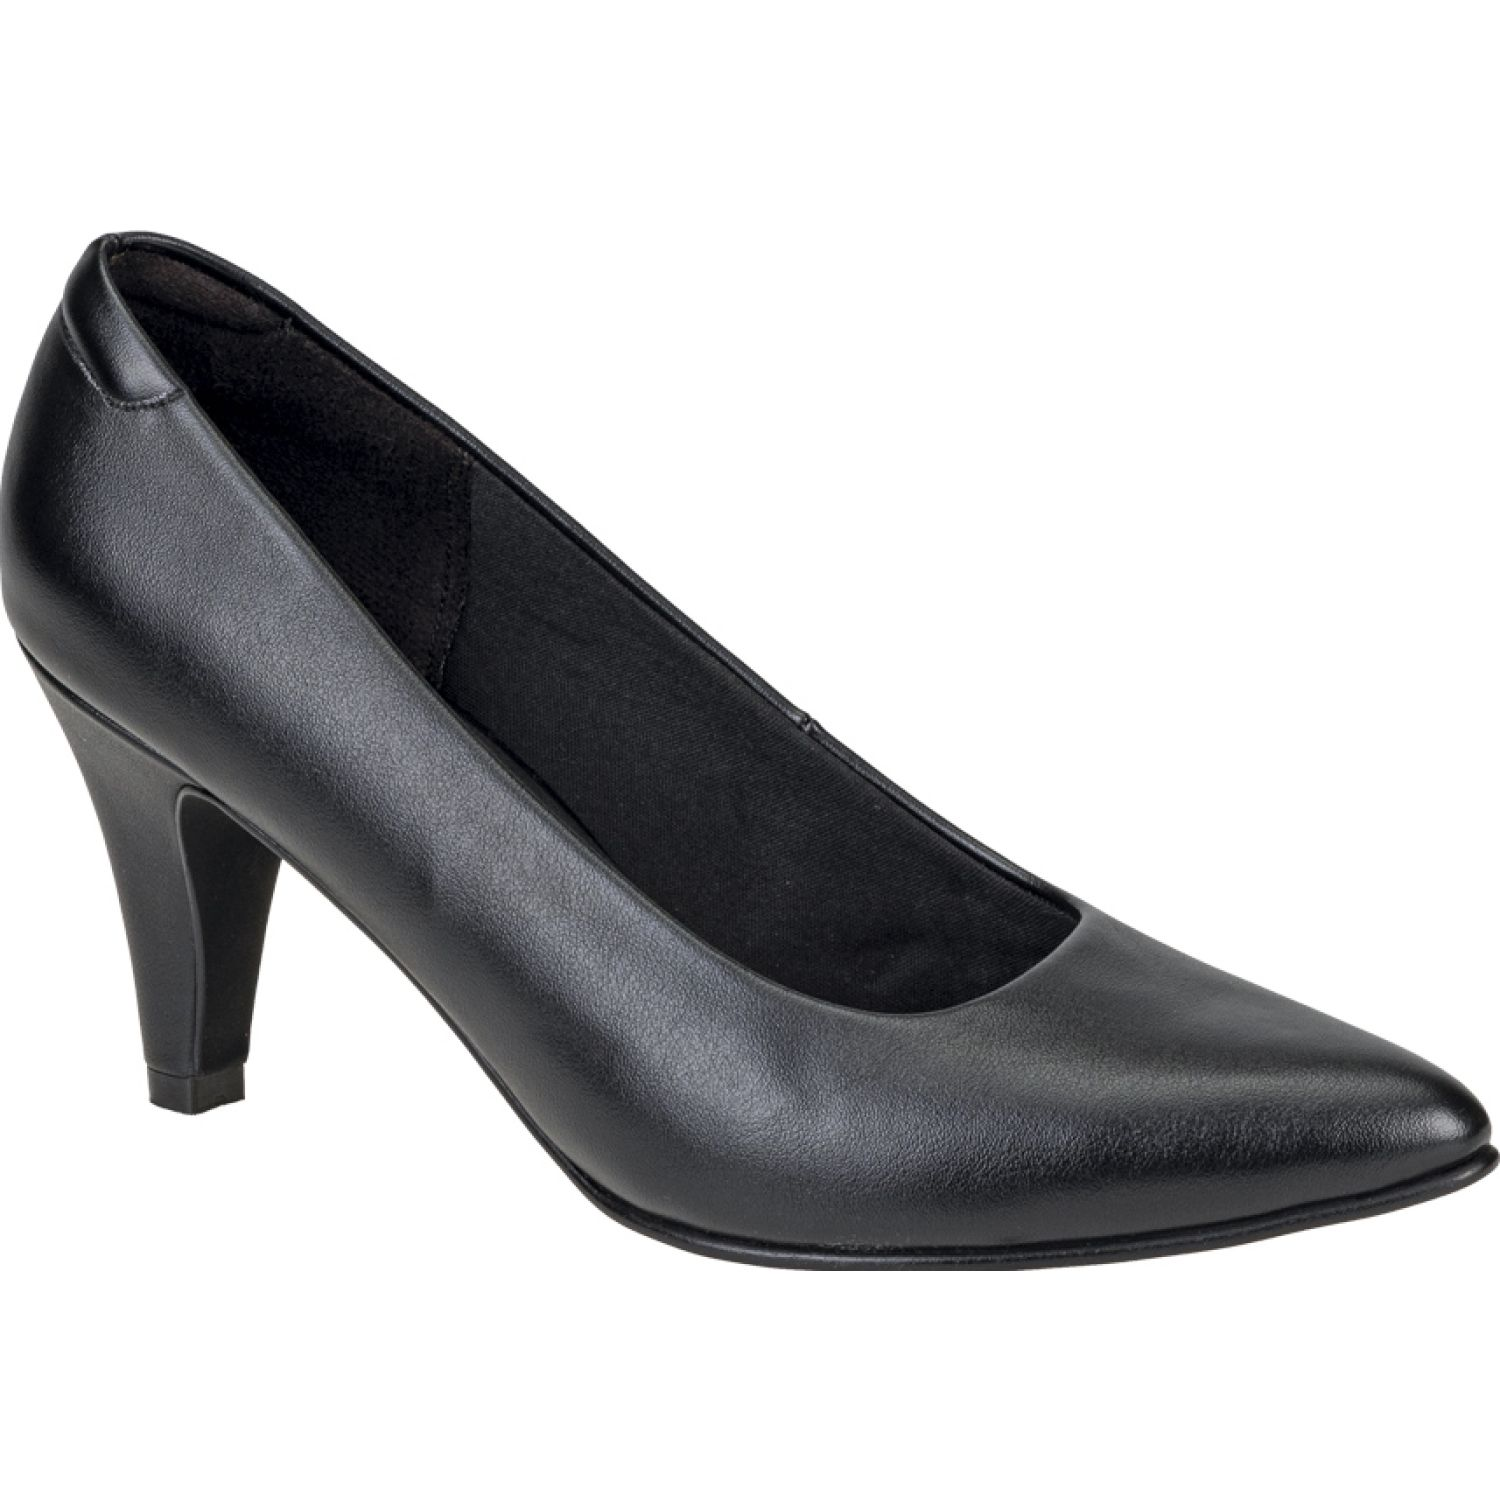 FOOTLOOSE Fh-02i20 NEGRO Estiletos y pumps